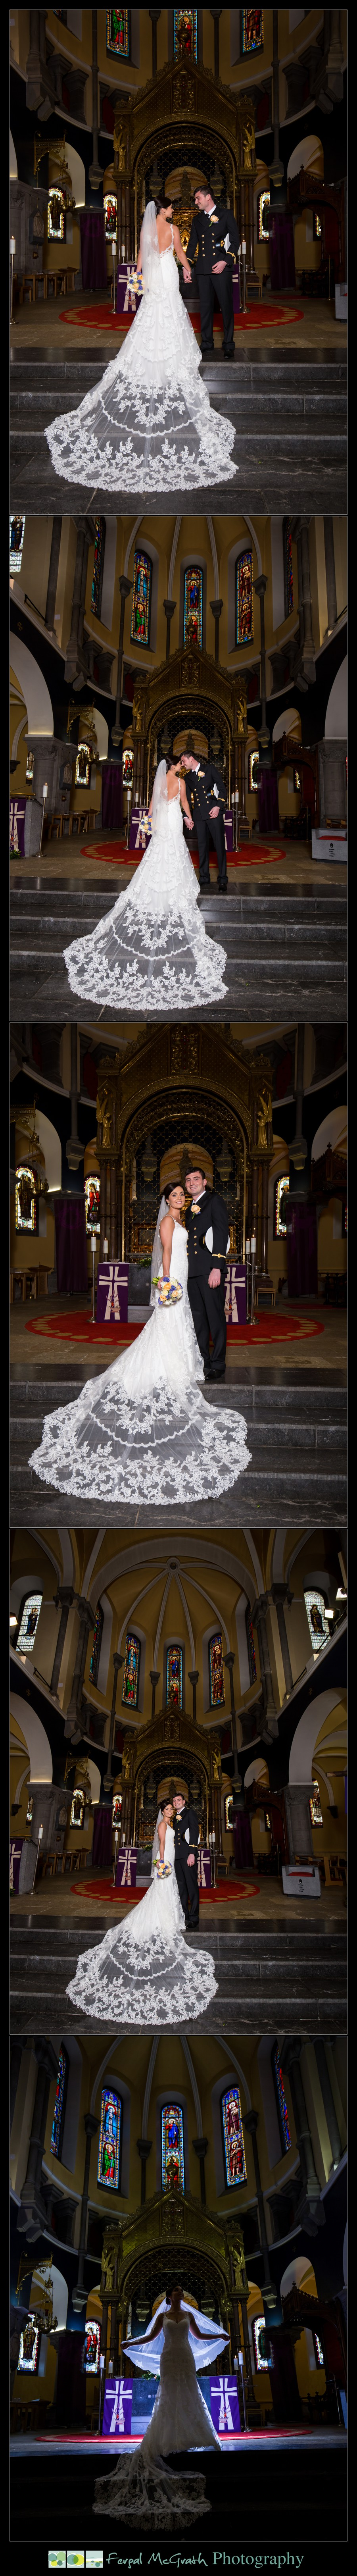 Castle Dargan Hotel Wedding Jamie and Andrew bride and groom photos in sligo cathedral